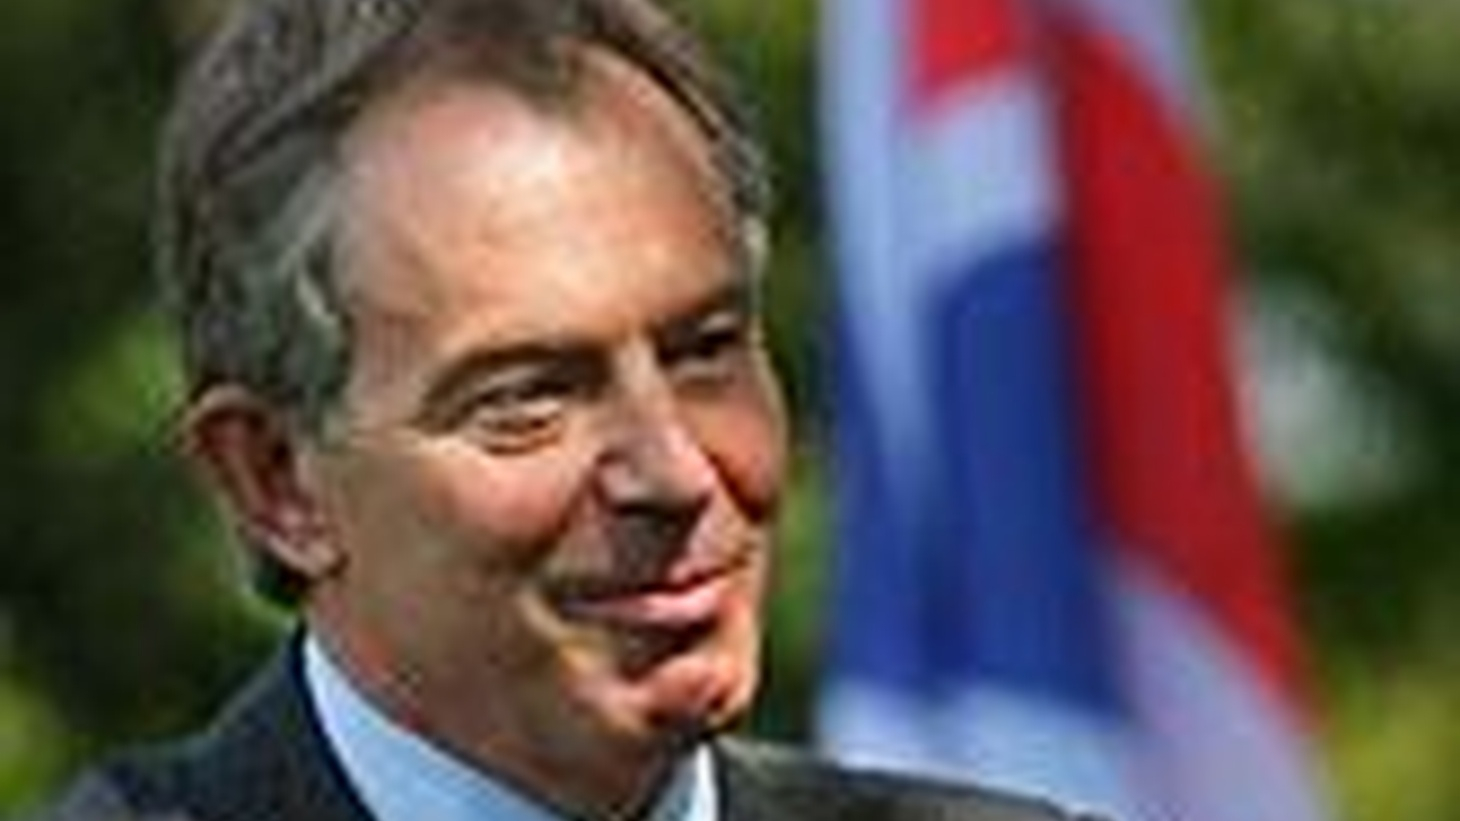 """Tony Blair says, """"Ten years isenough,"""" and he'll step down as British Prime Minister on June 27.   We look at Blair's record and what his departure will mean for PresidentBush and the European Union.   Also,President Bush on a new Iraq spending bill, and PopeBenedict XVI on politics, religion and abortion."""